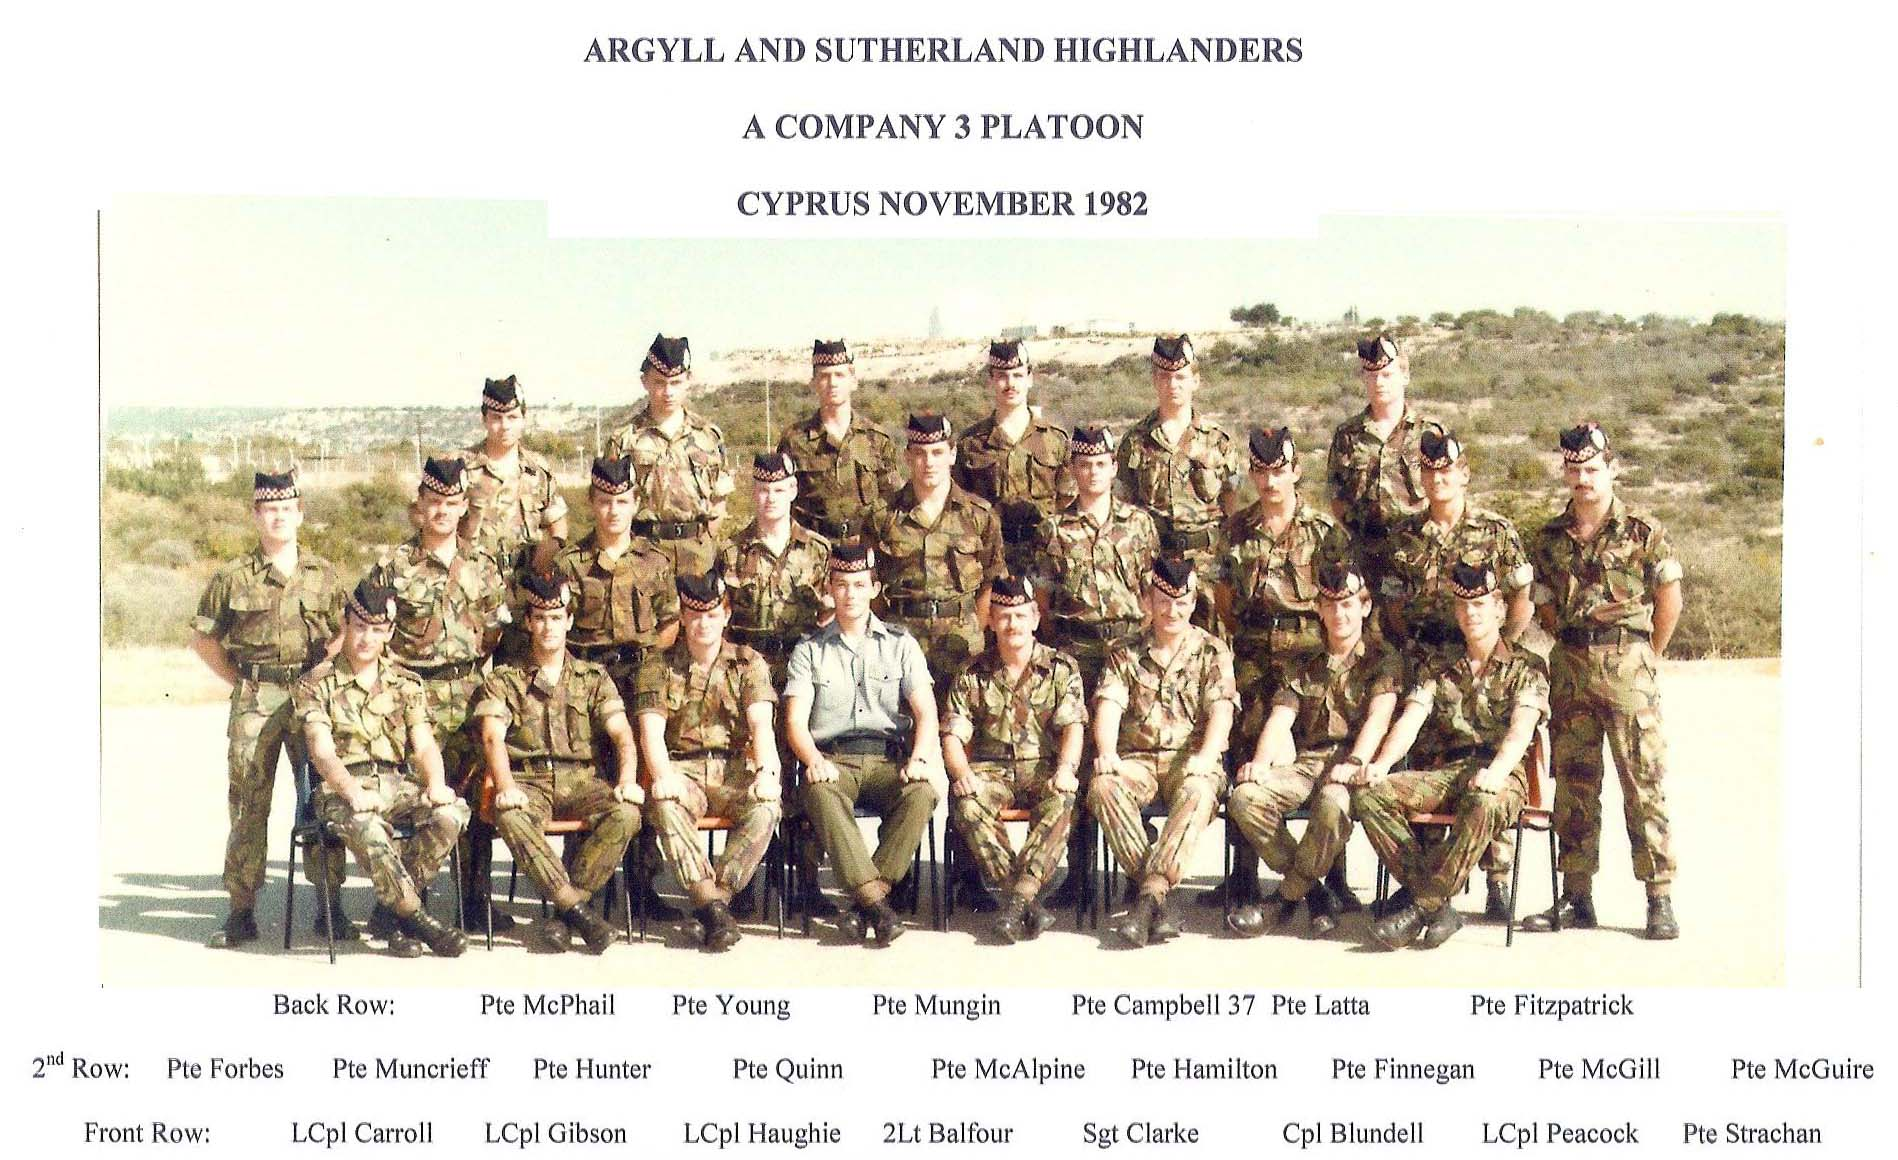 Argyll And Sutherland Highlanders History 1945 To Present Day Company And Platoon Photographs